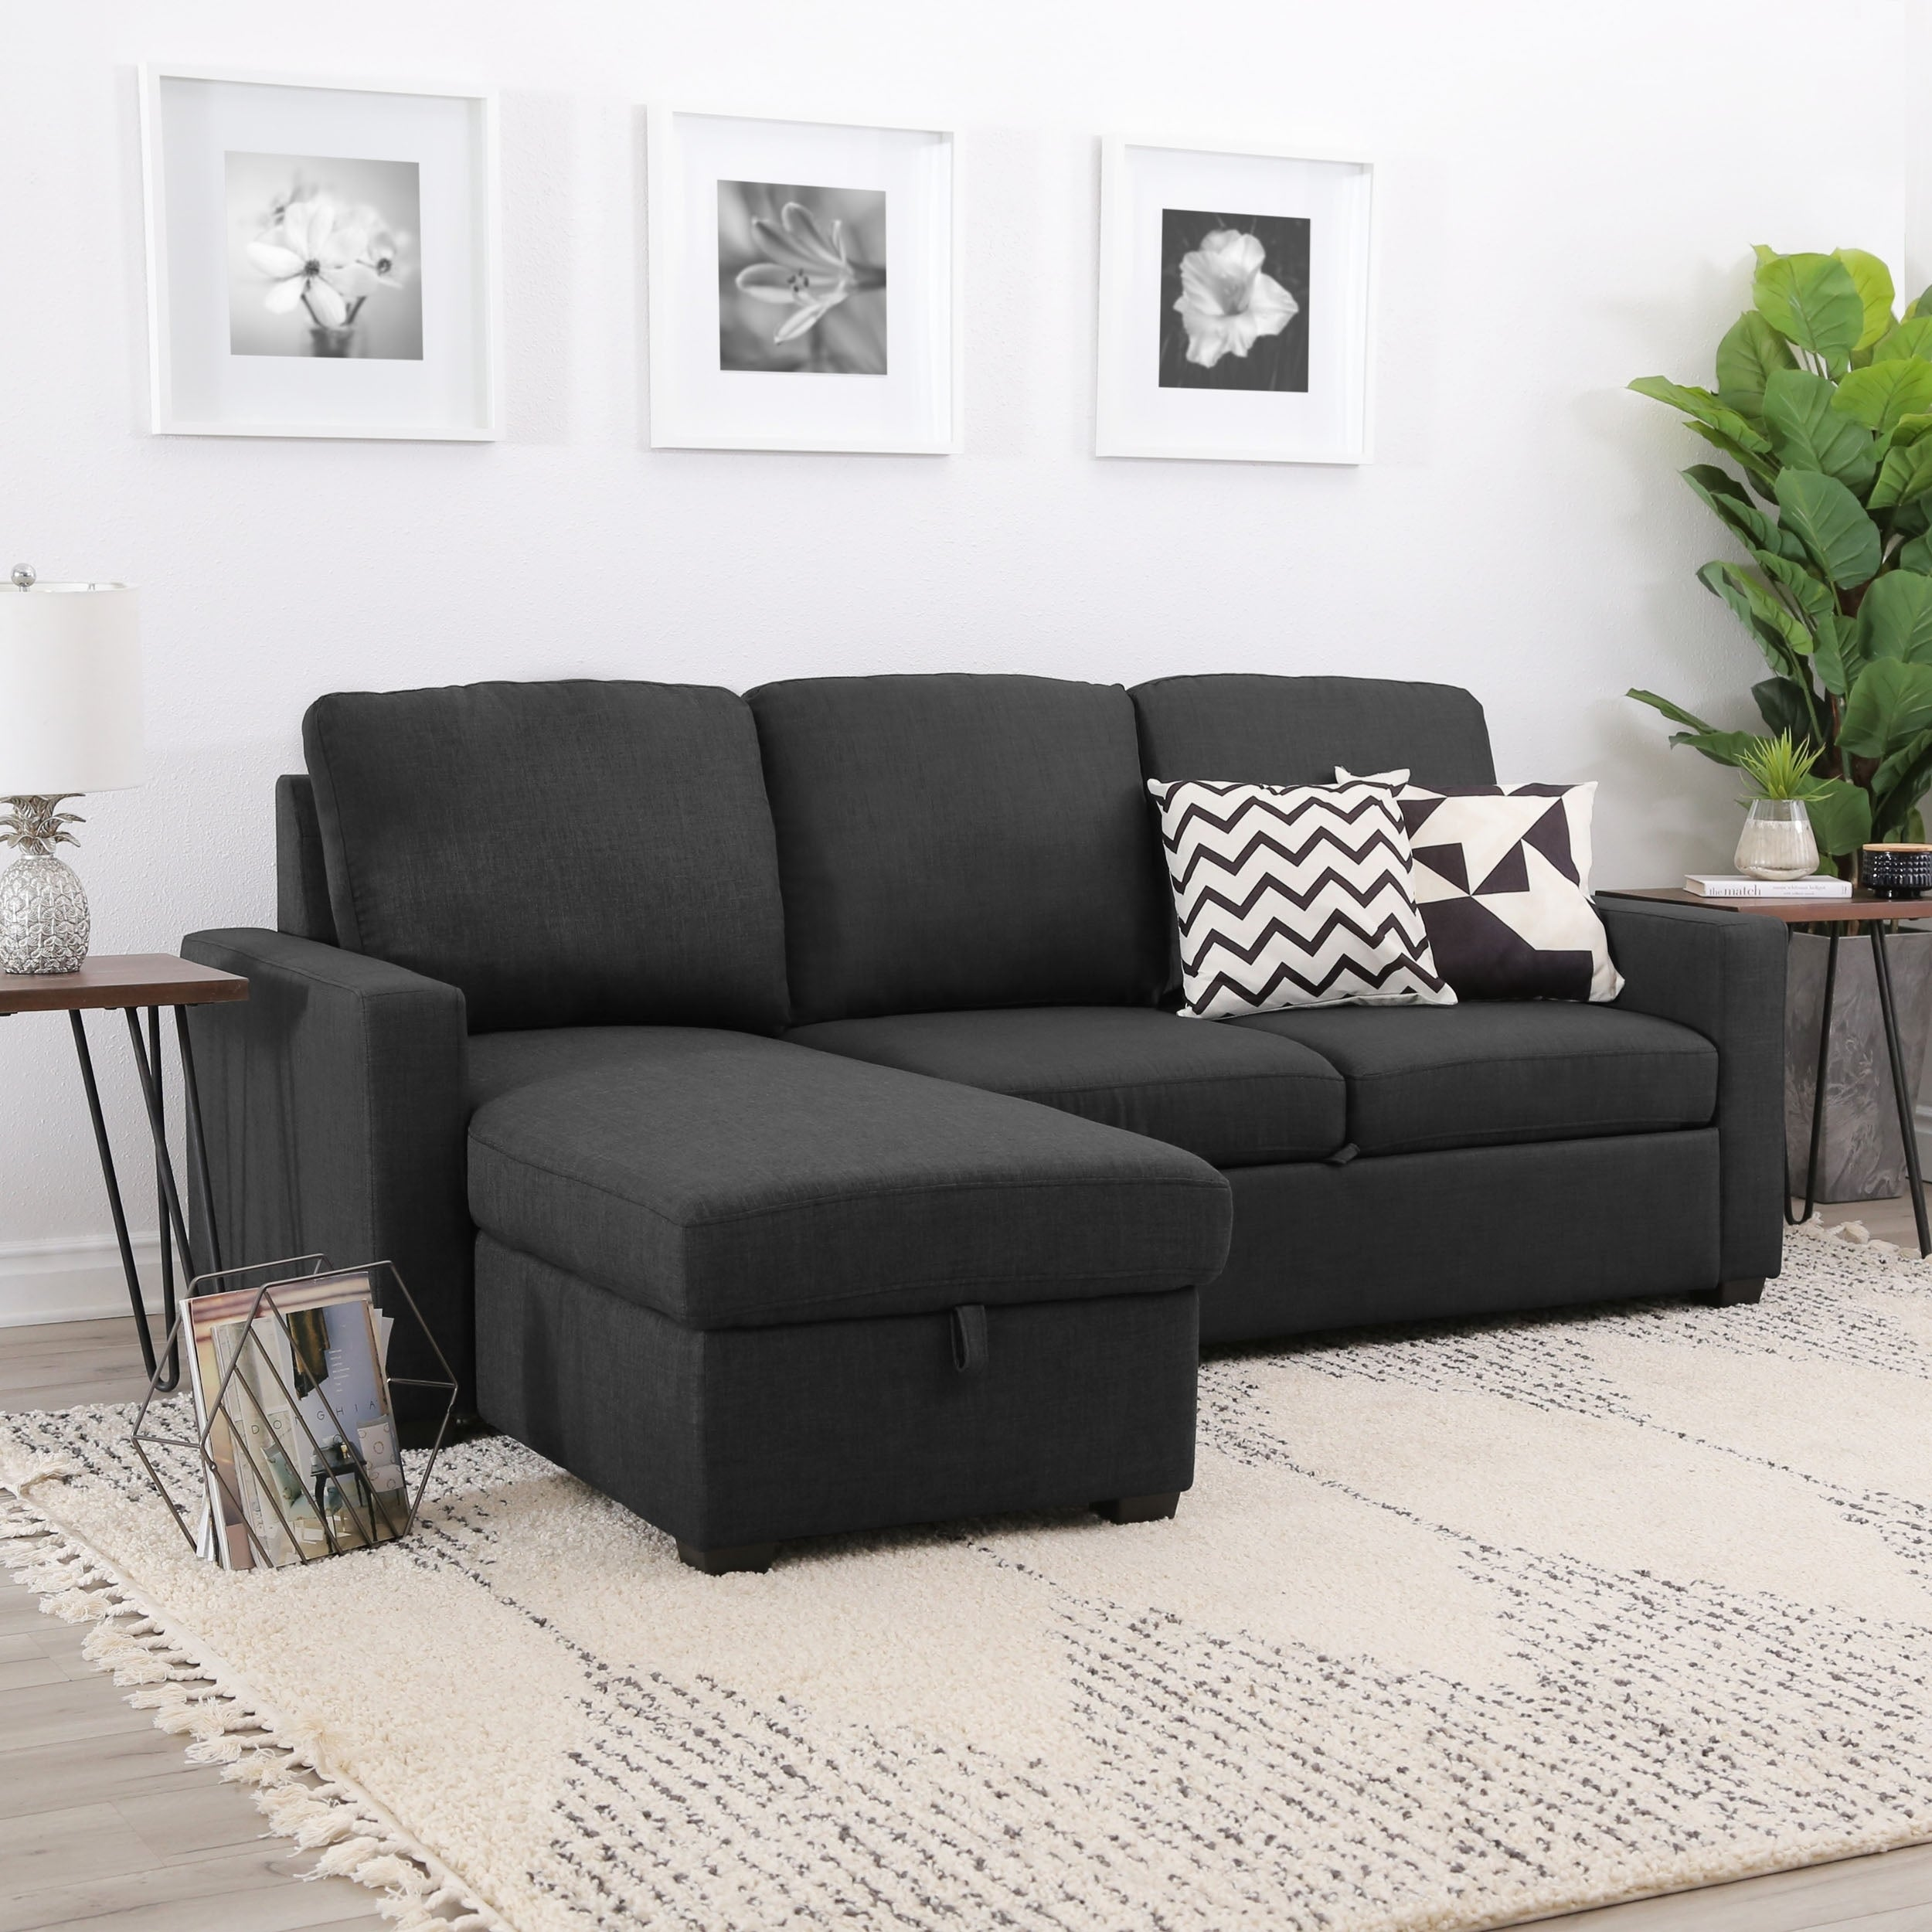 Shop Abbyson Newport Upholstered Sofa Storage Sectional On Sale